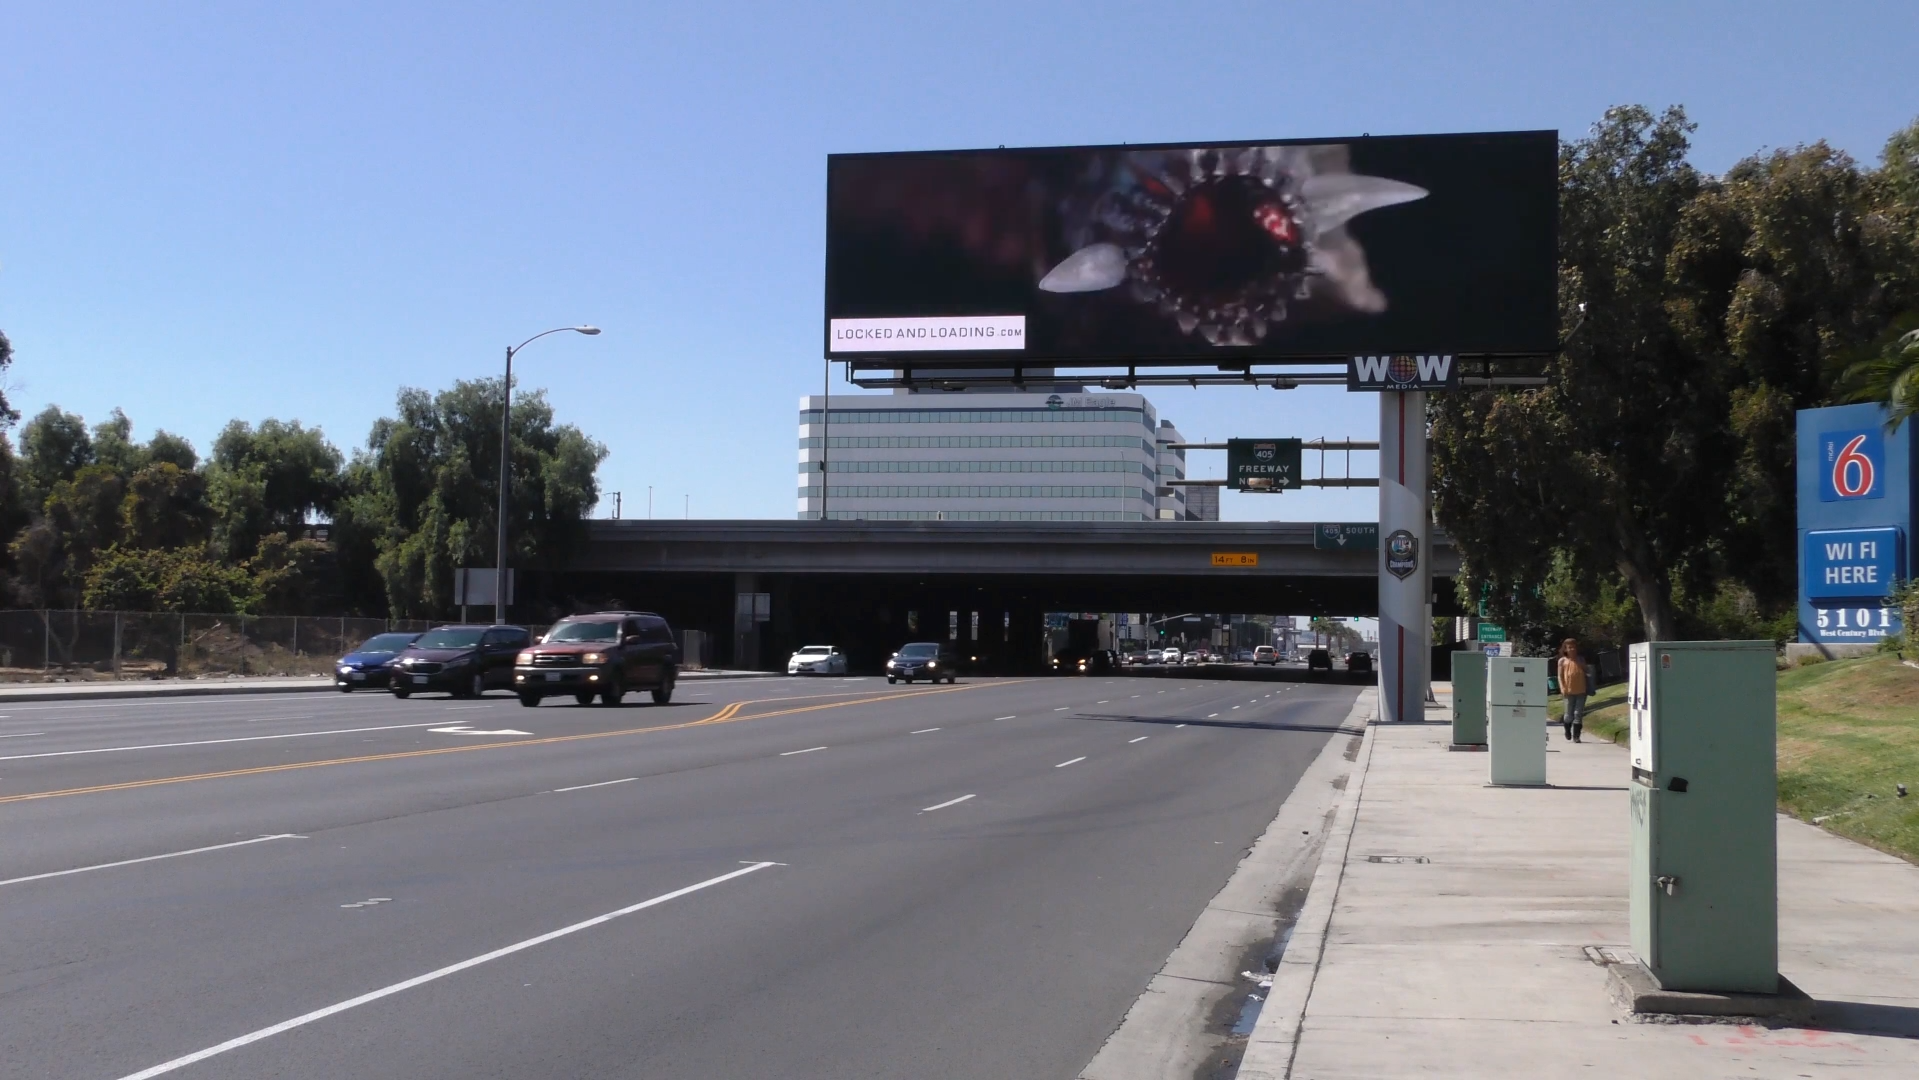 billboard_04.PNG